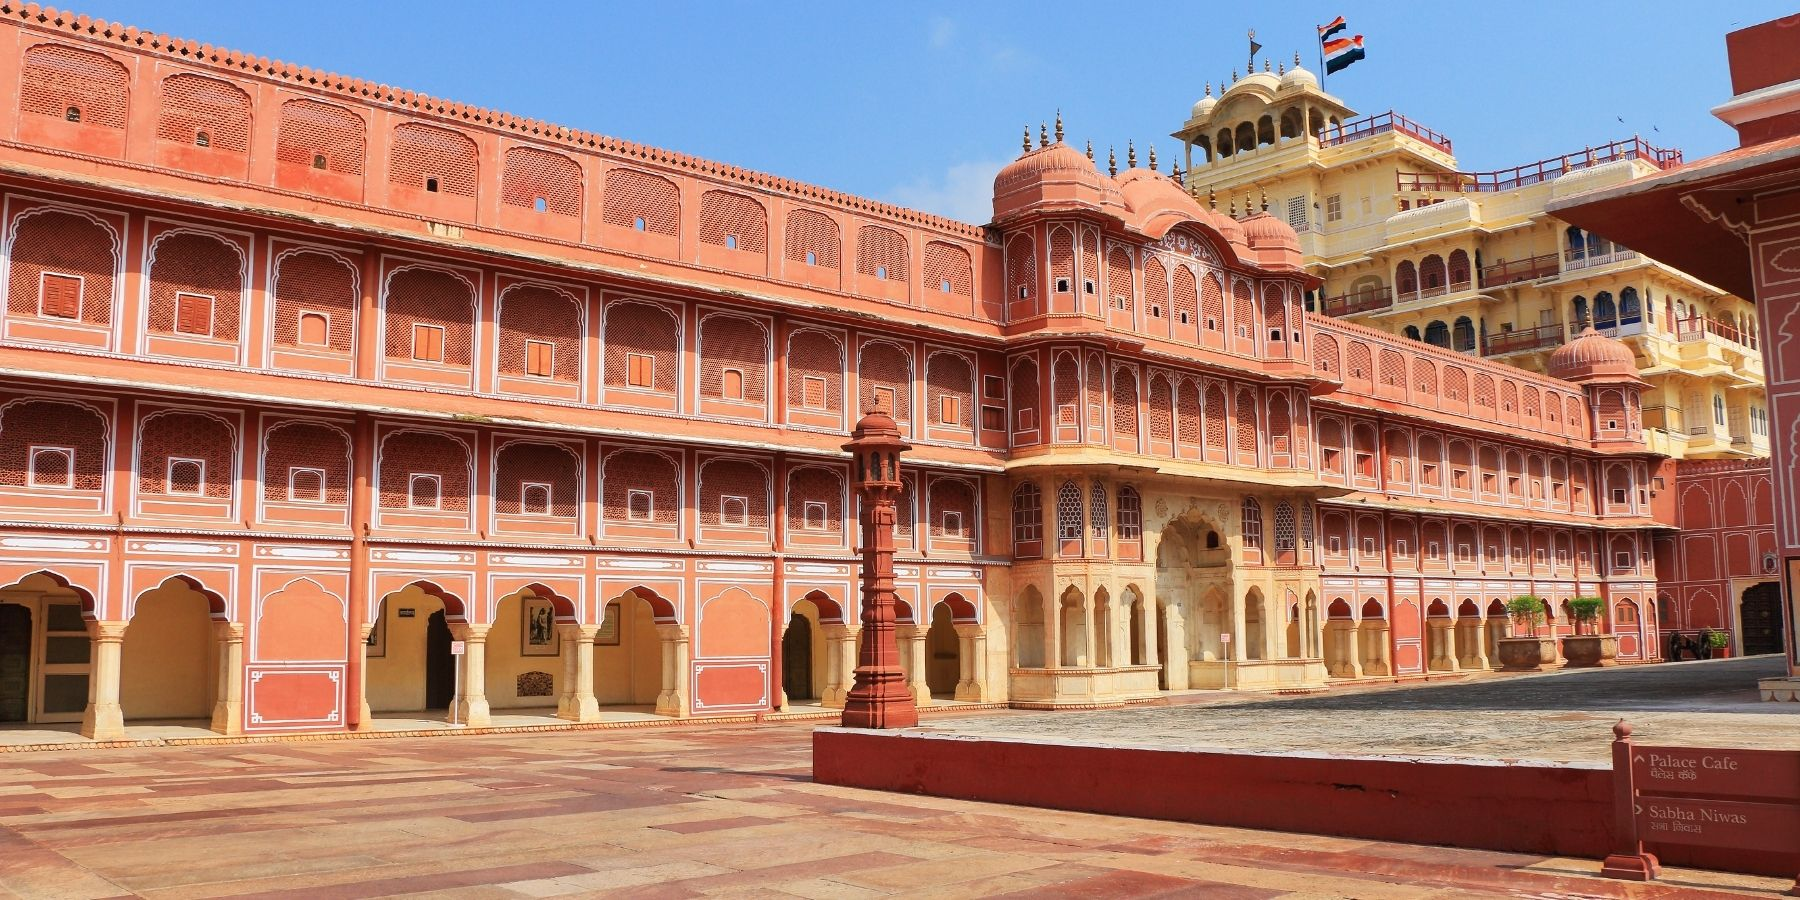 History of royal palaces of India and their survival